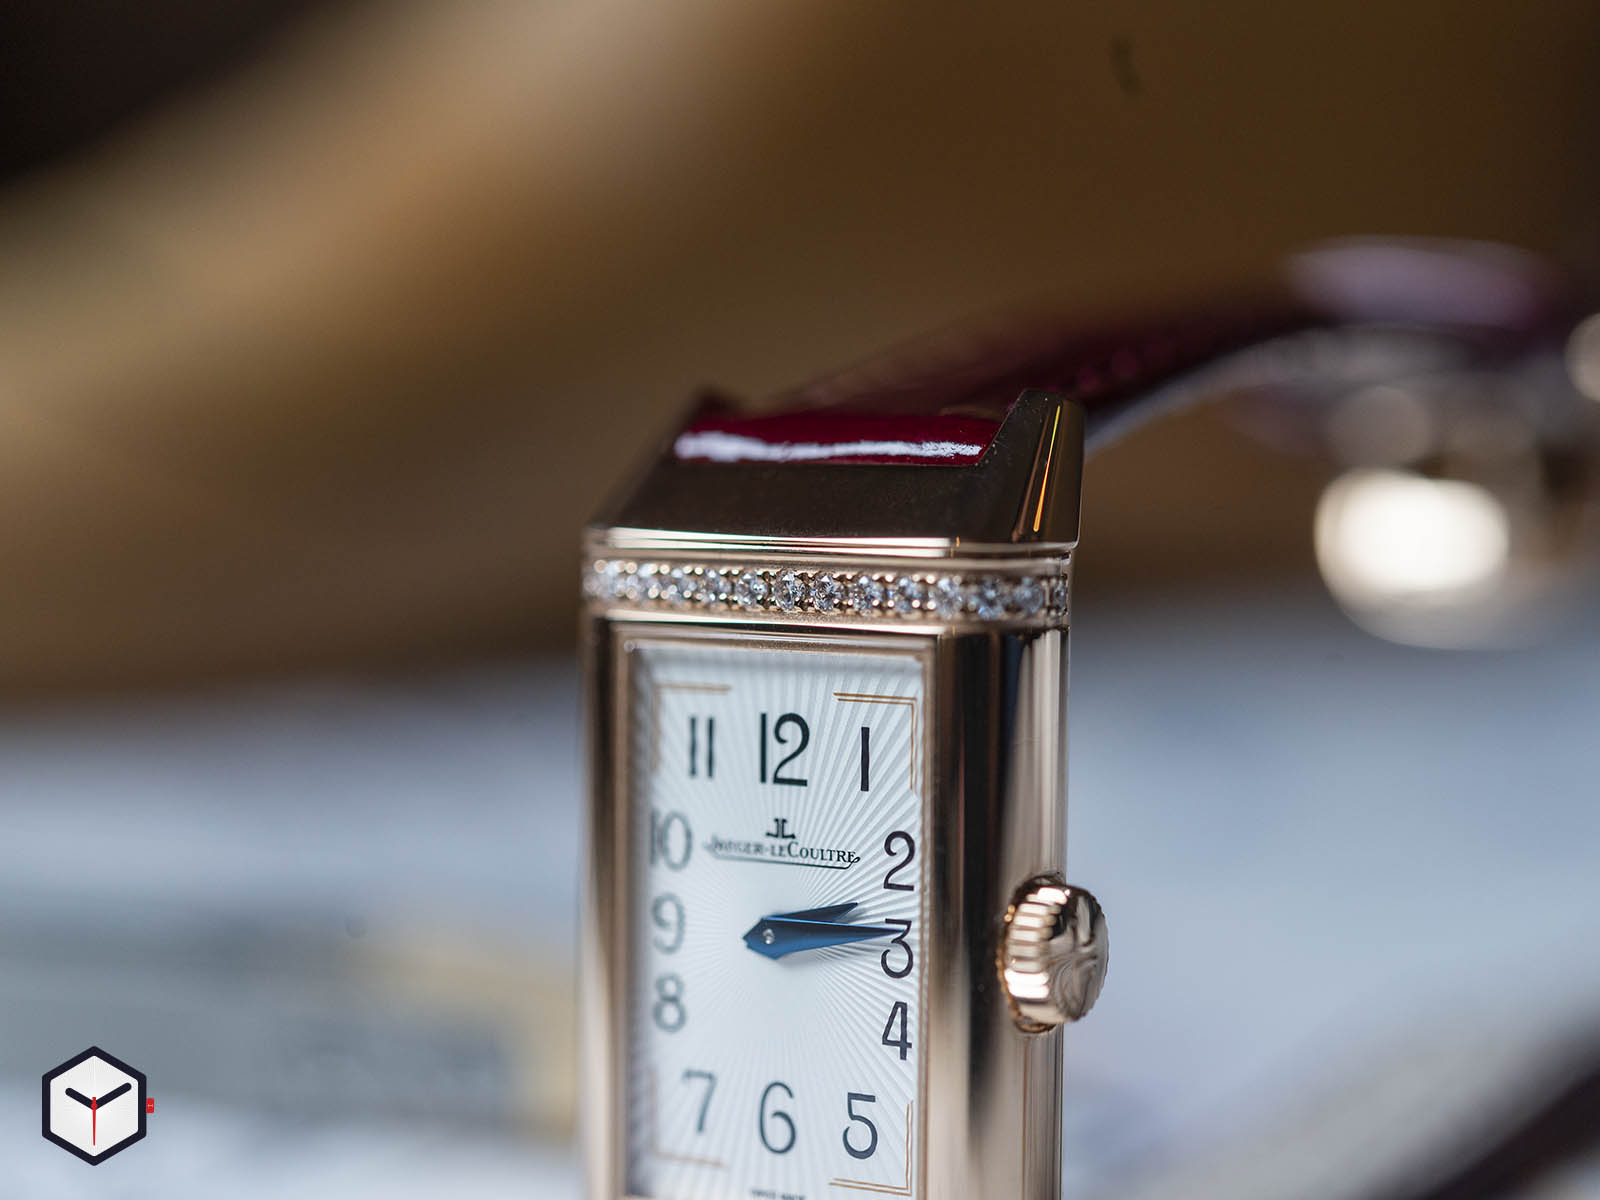 3342520-jaeger-lecoultre-reverso-one-duetto-sihh-2019-3.jpg